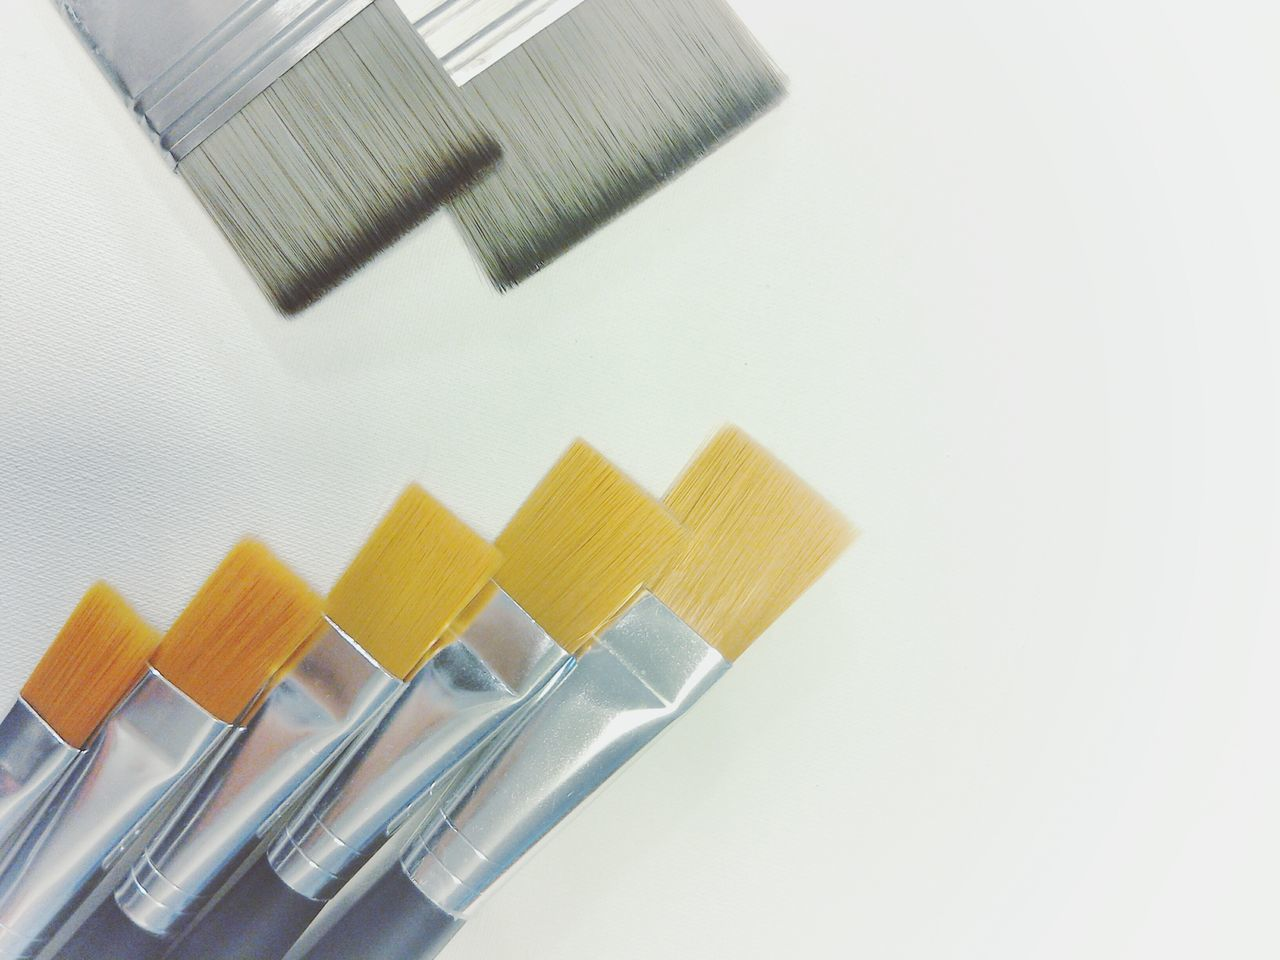 Paint Brush Set Canvas New Variation No People Close-up White Background Painting Tools Lieblingsteil